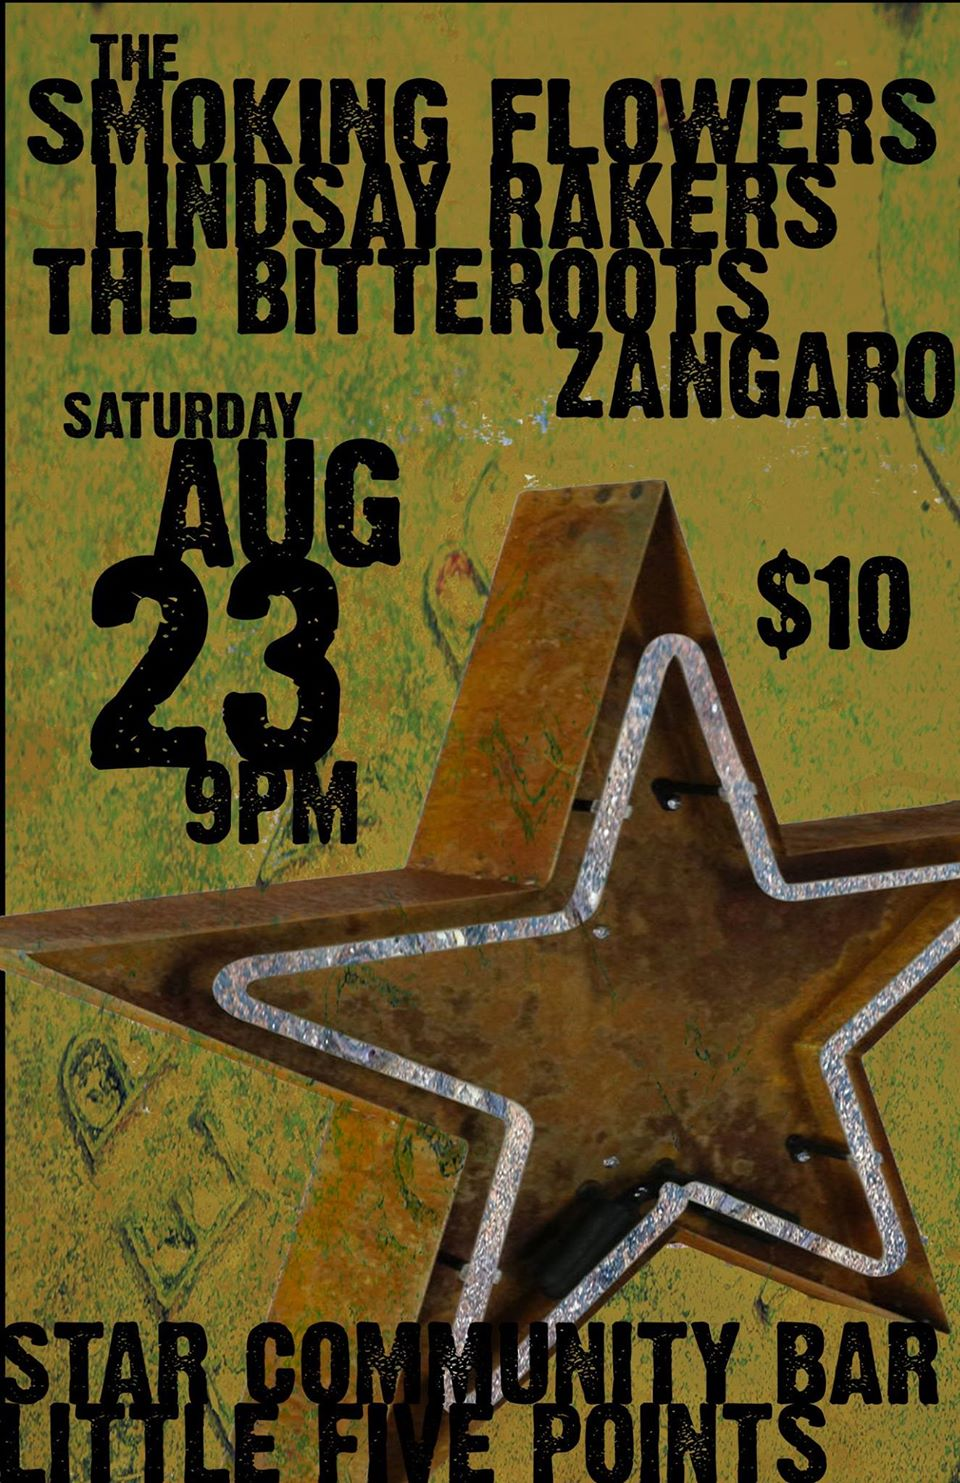 THE SMOKING FLOWERS + ALCHEMY + LINDSAY RAKERS + THE BITTEROOTS + ZANGARO — August 23, 2014 — The Star Community Bar, Atlanta, GA